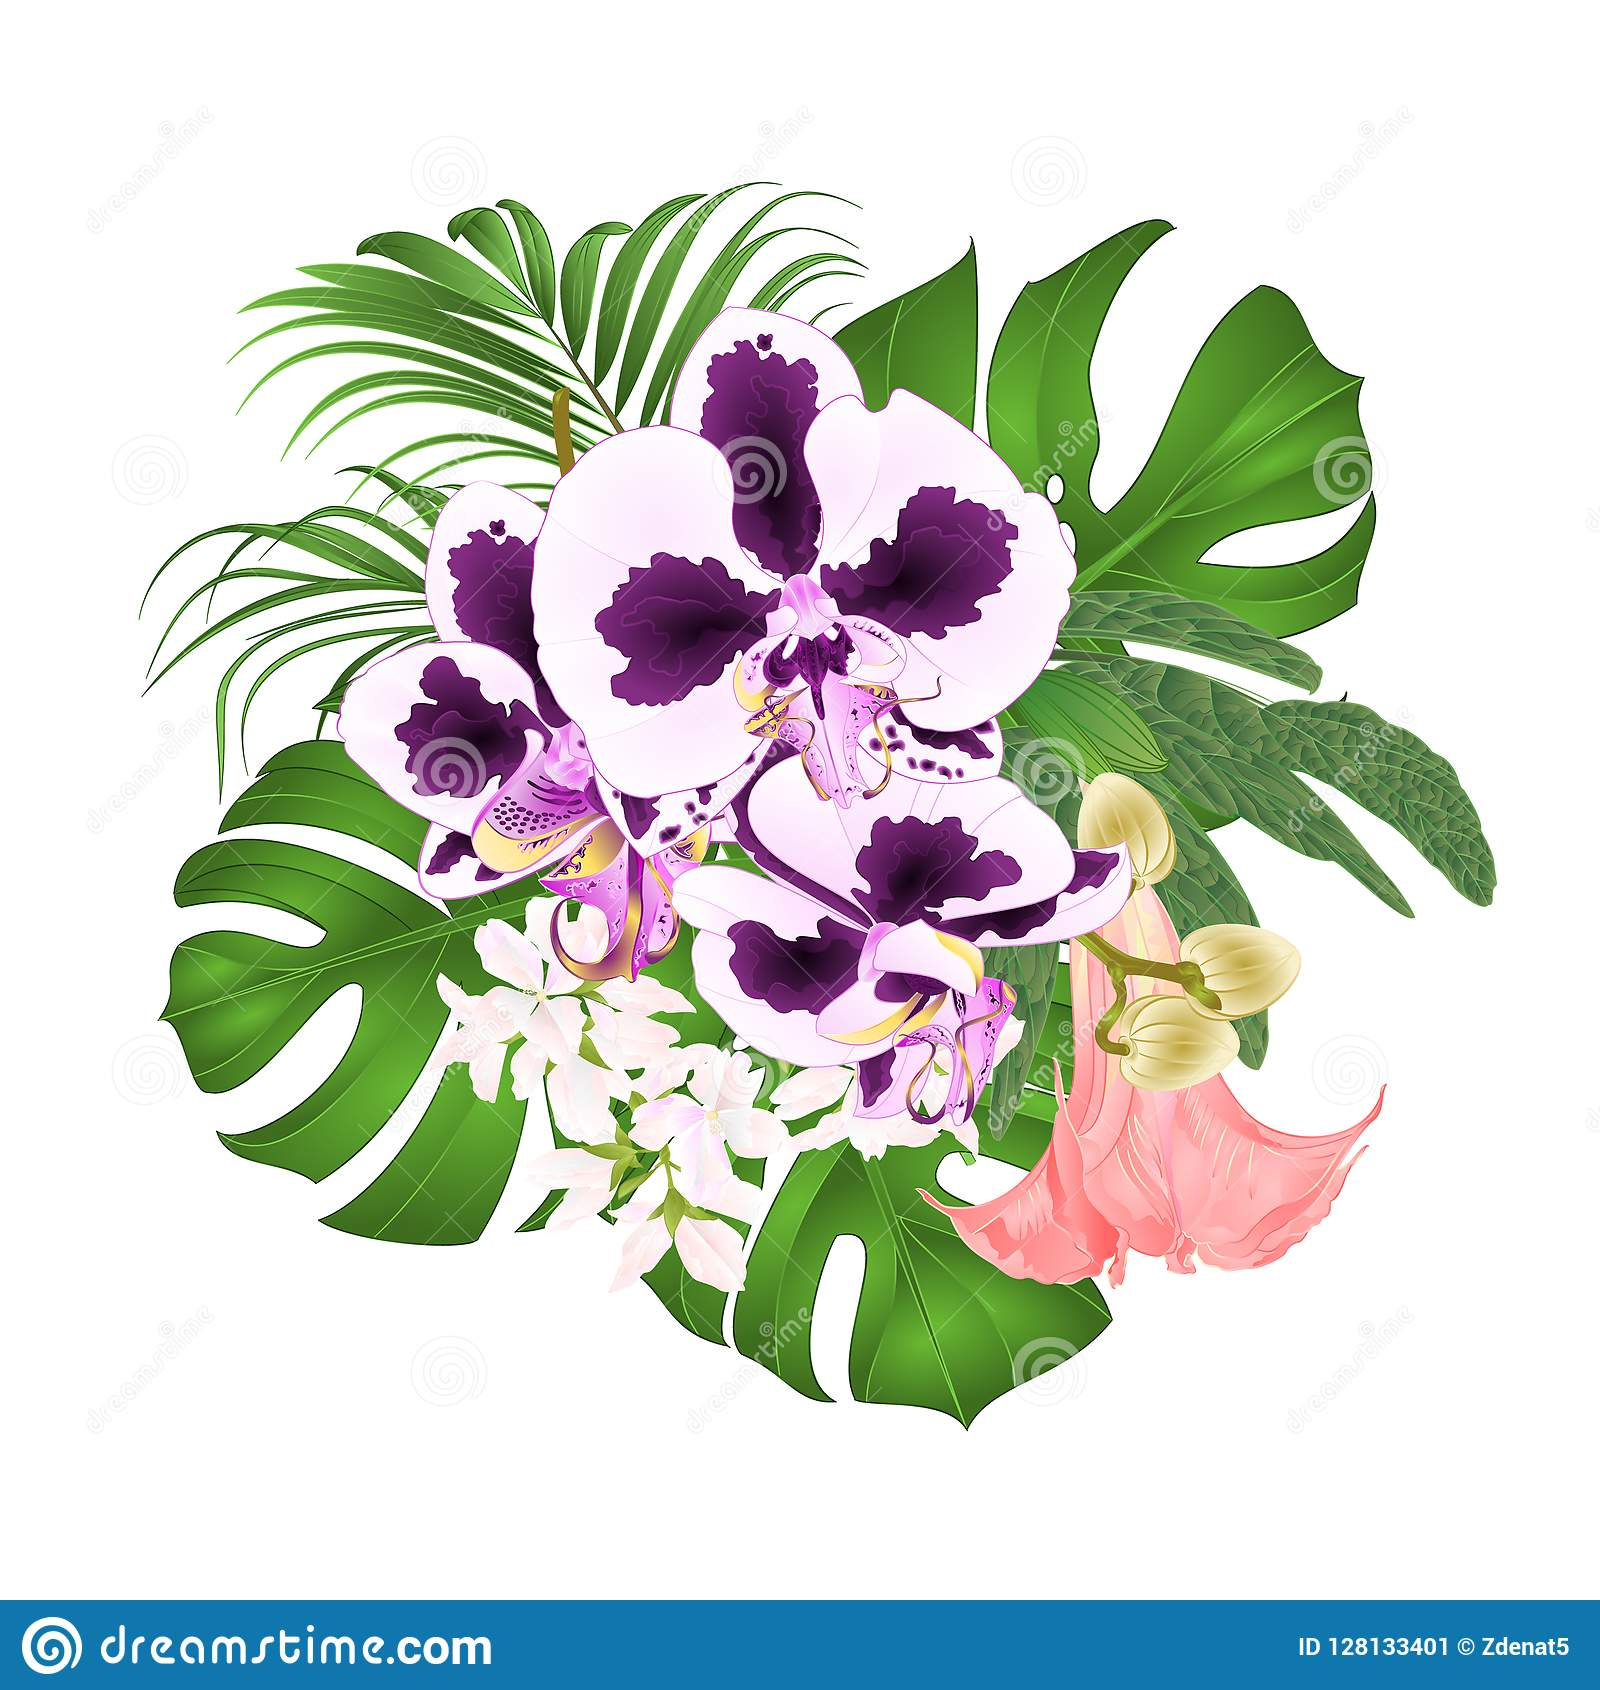 Bouquet With Tropical Flowers Floral Arrangement With Beautiful Spoted Orchid Phalaenopsis Palm Philodendron And Brugmansia Vi Stock Vector Illustration Of Design Botanical 128133401